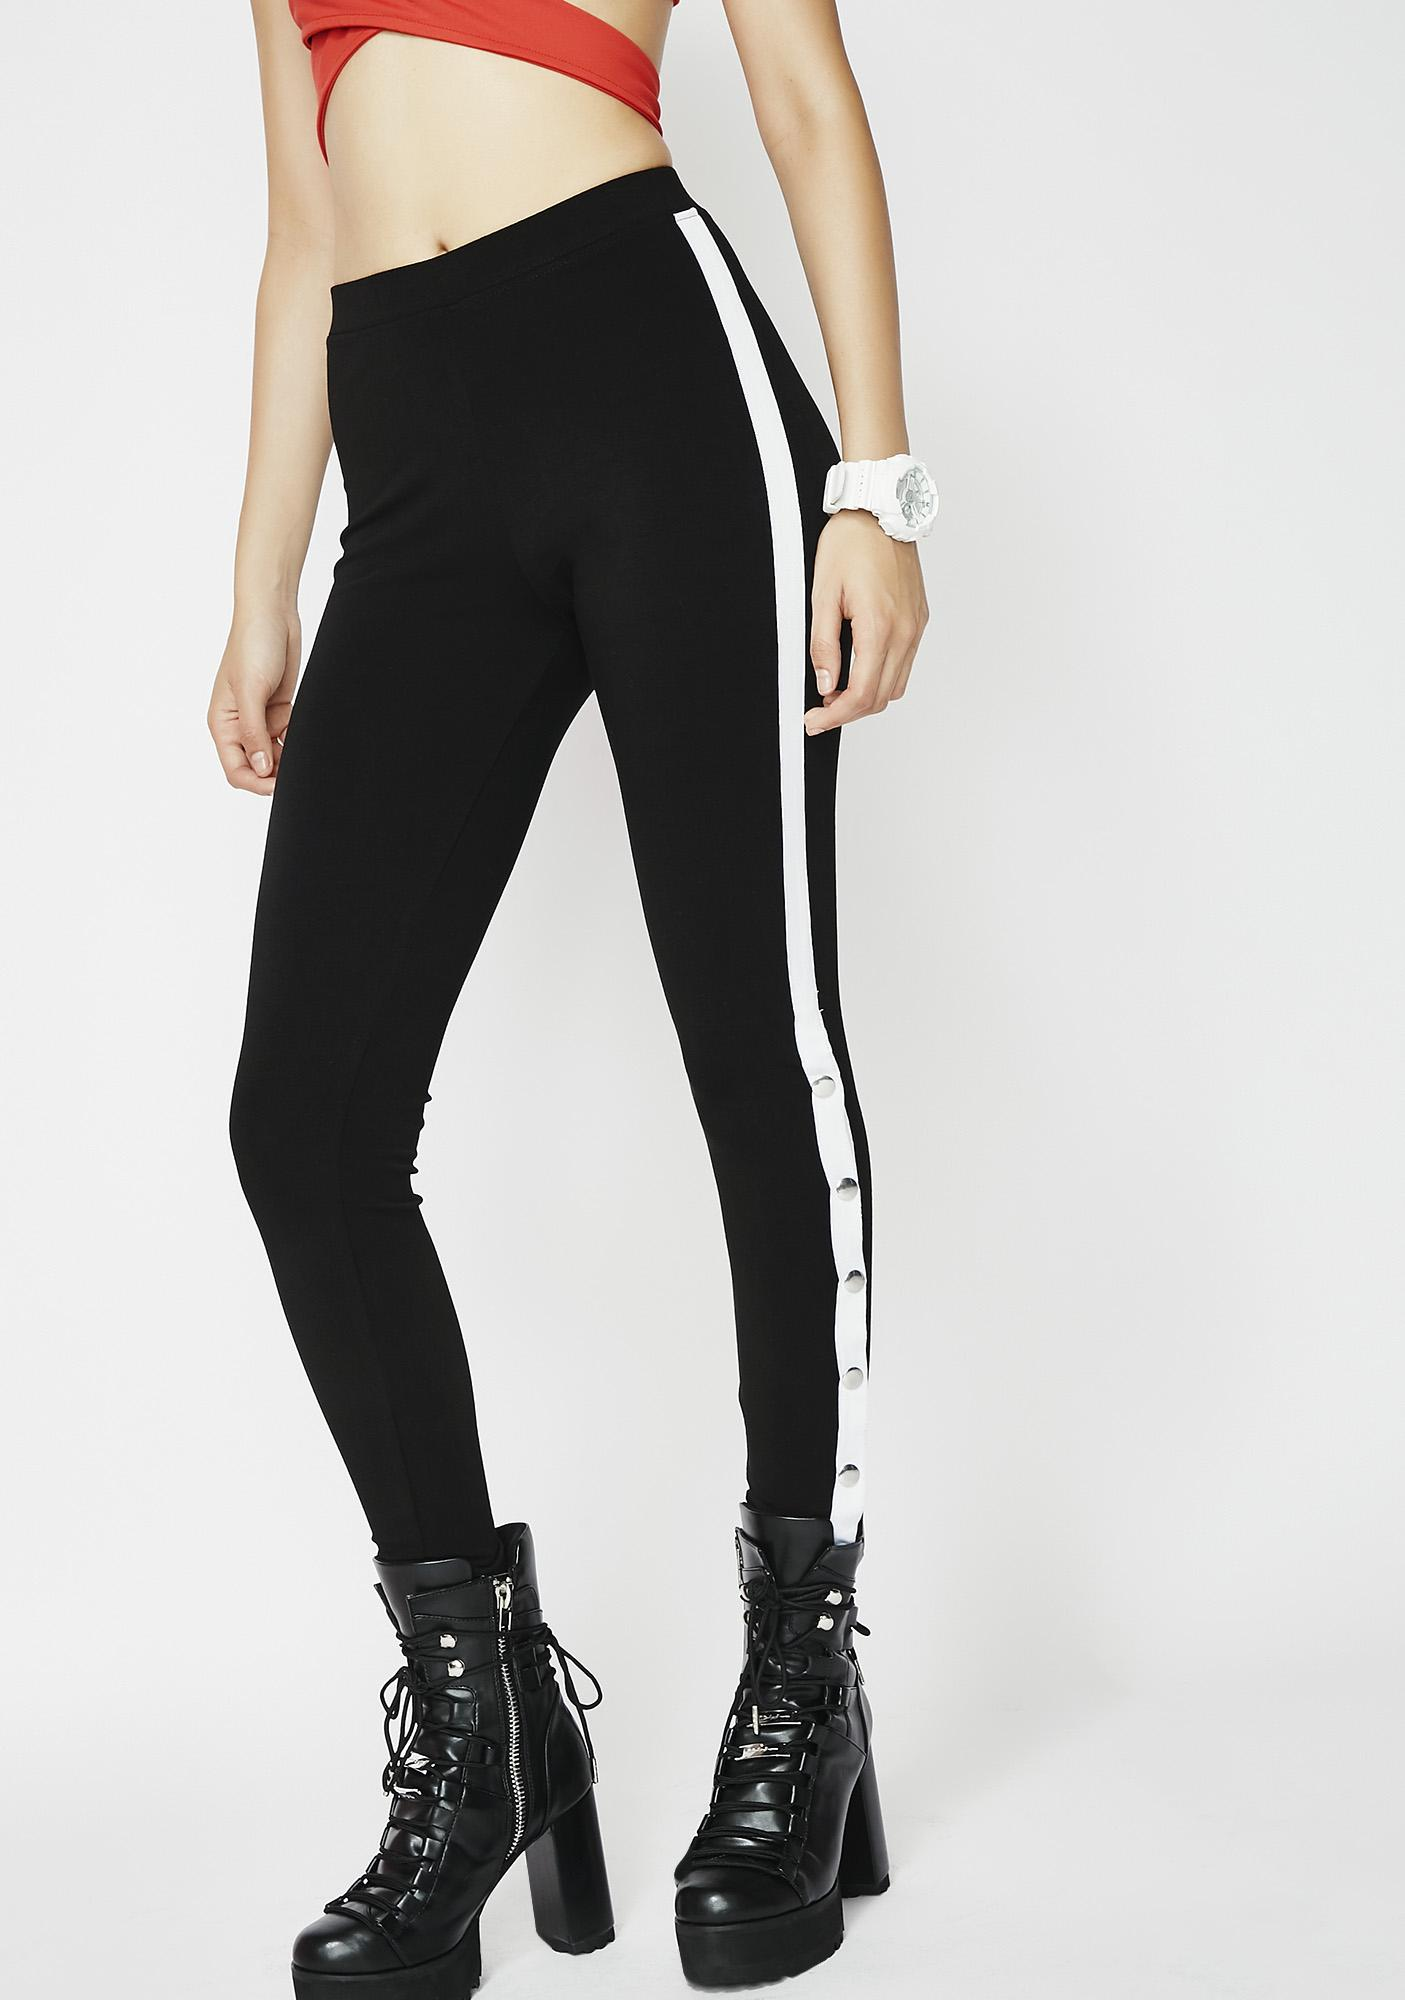 Kiki Riki Get It Goin' Snap Leggings